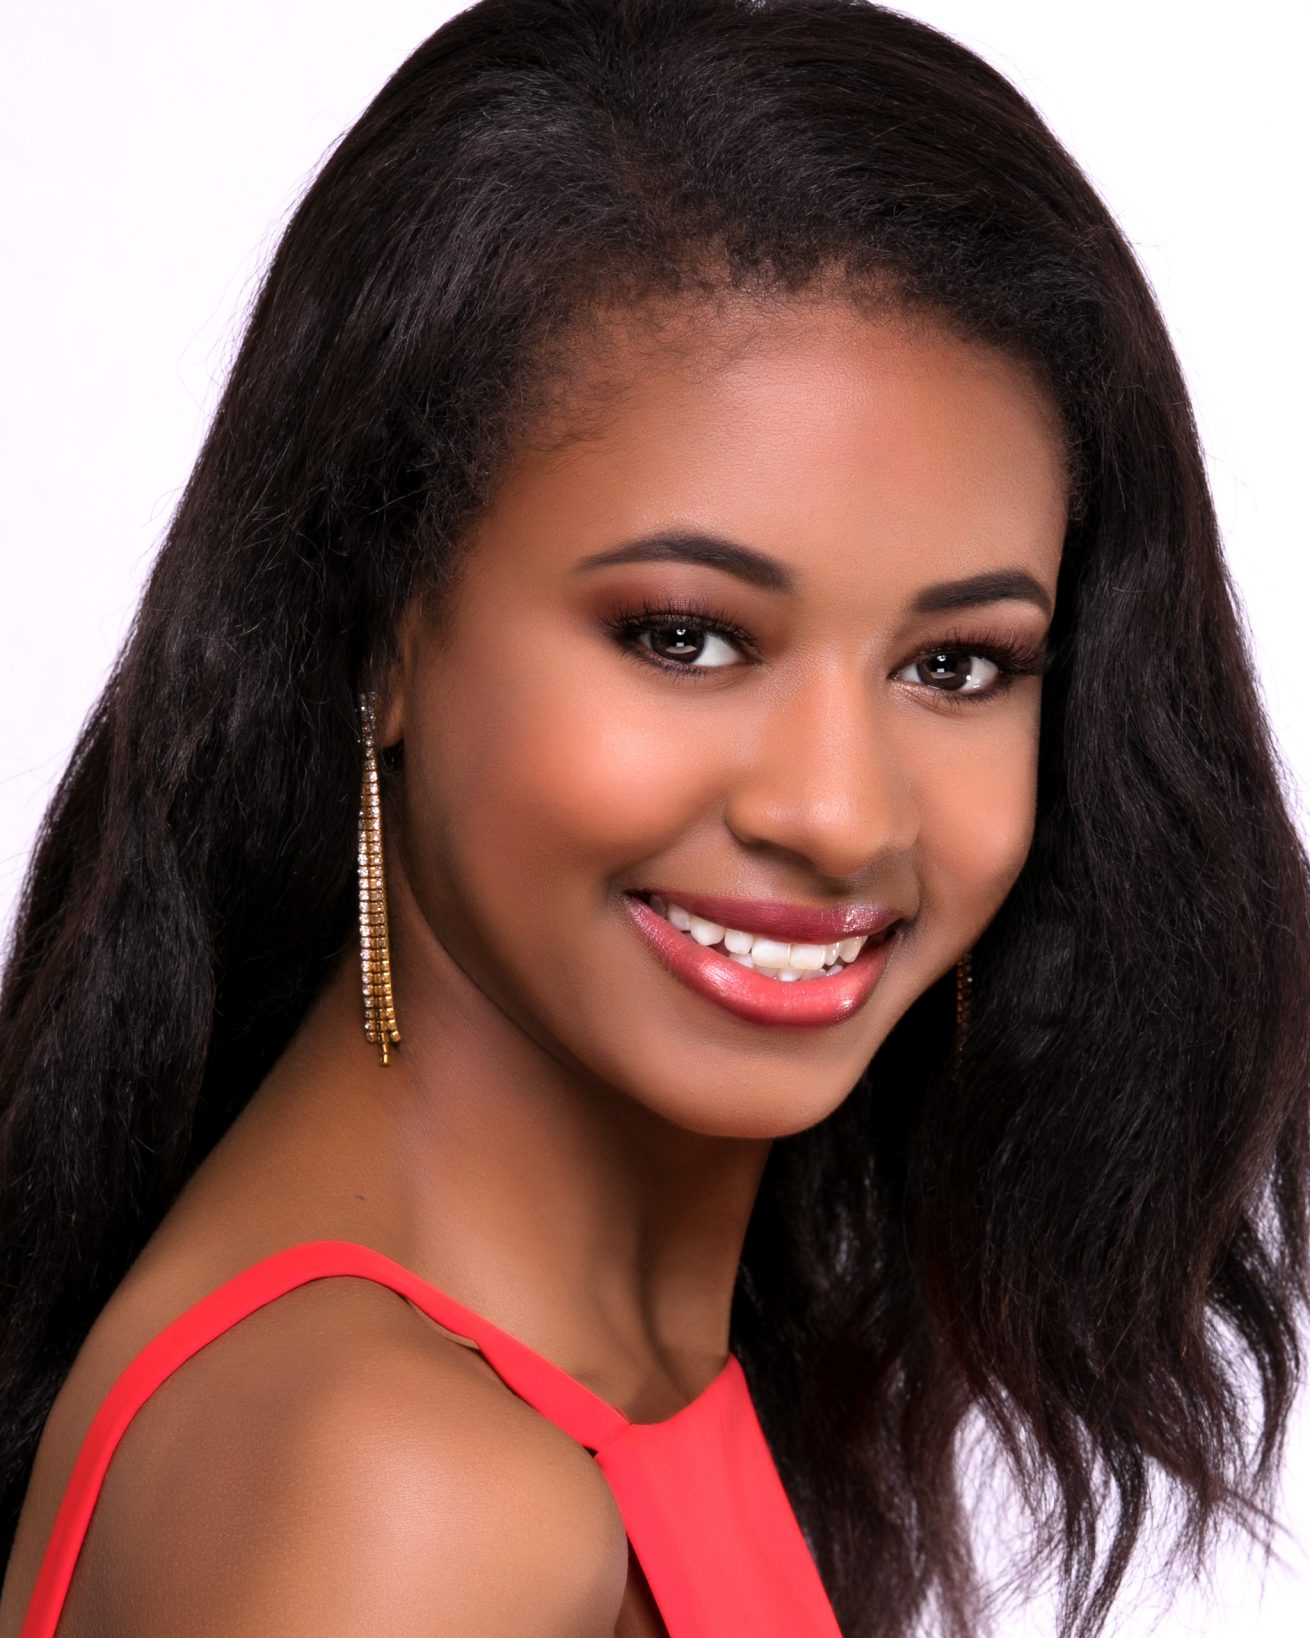 Miss Teen New York United States 2016 – Serena